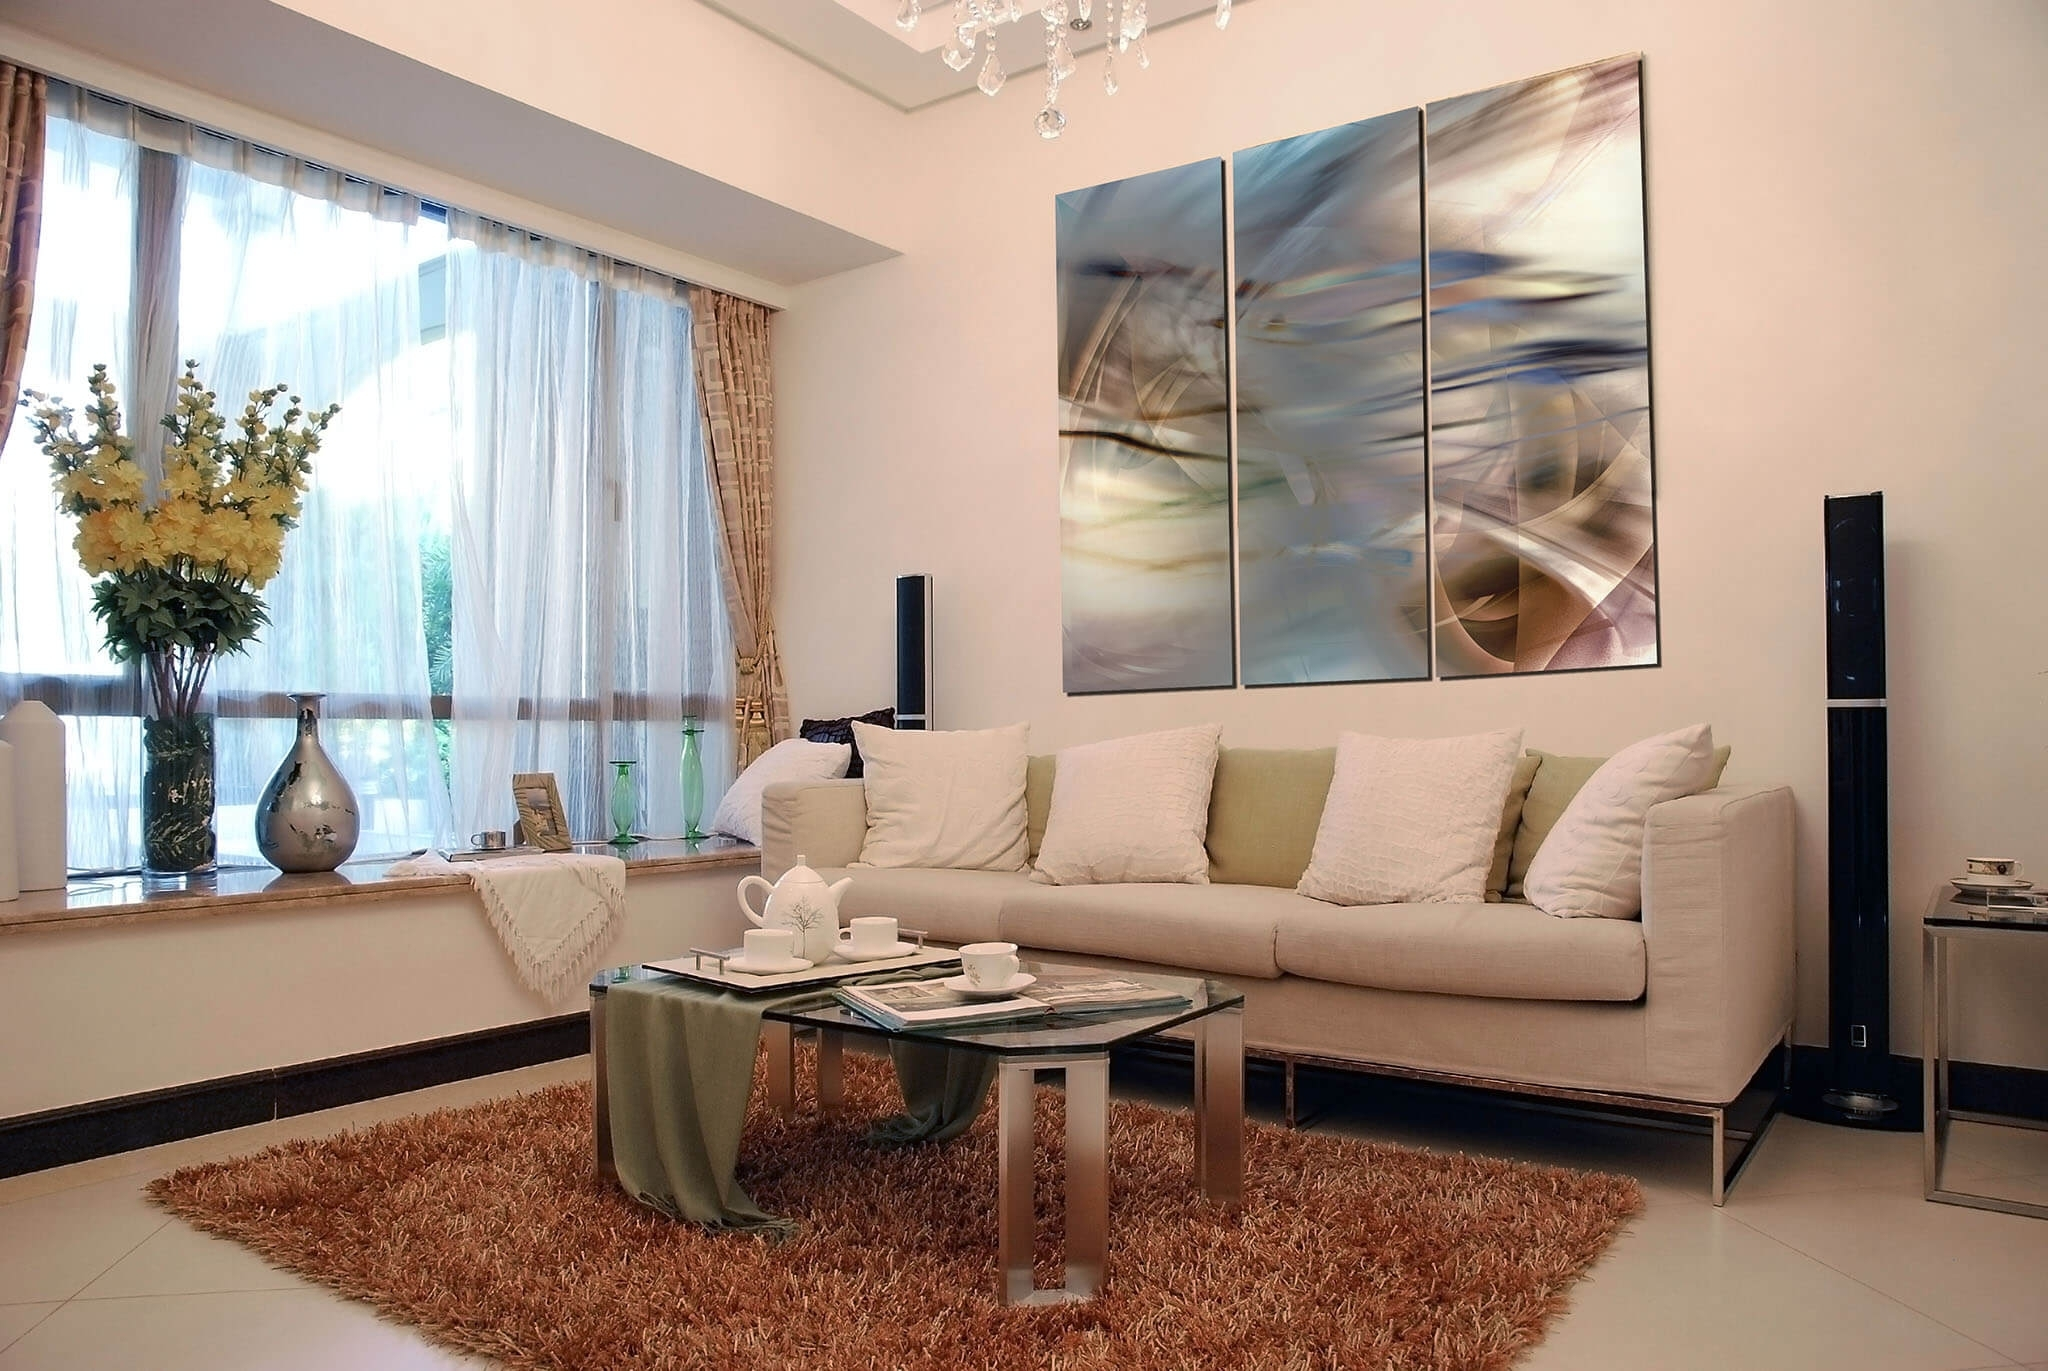 Explore Wall Art For Living Room Ideas For Your Home – Interior Throughout Newest Wall Art Ideas For Living Room (View 7 of 20)